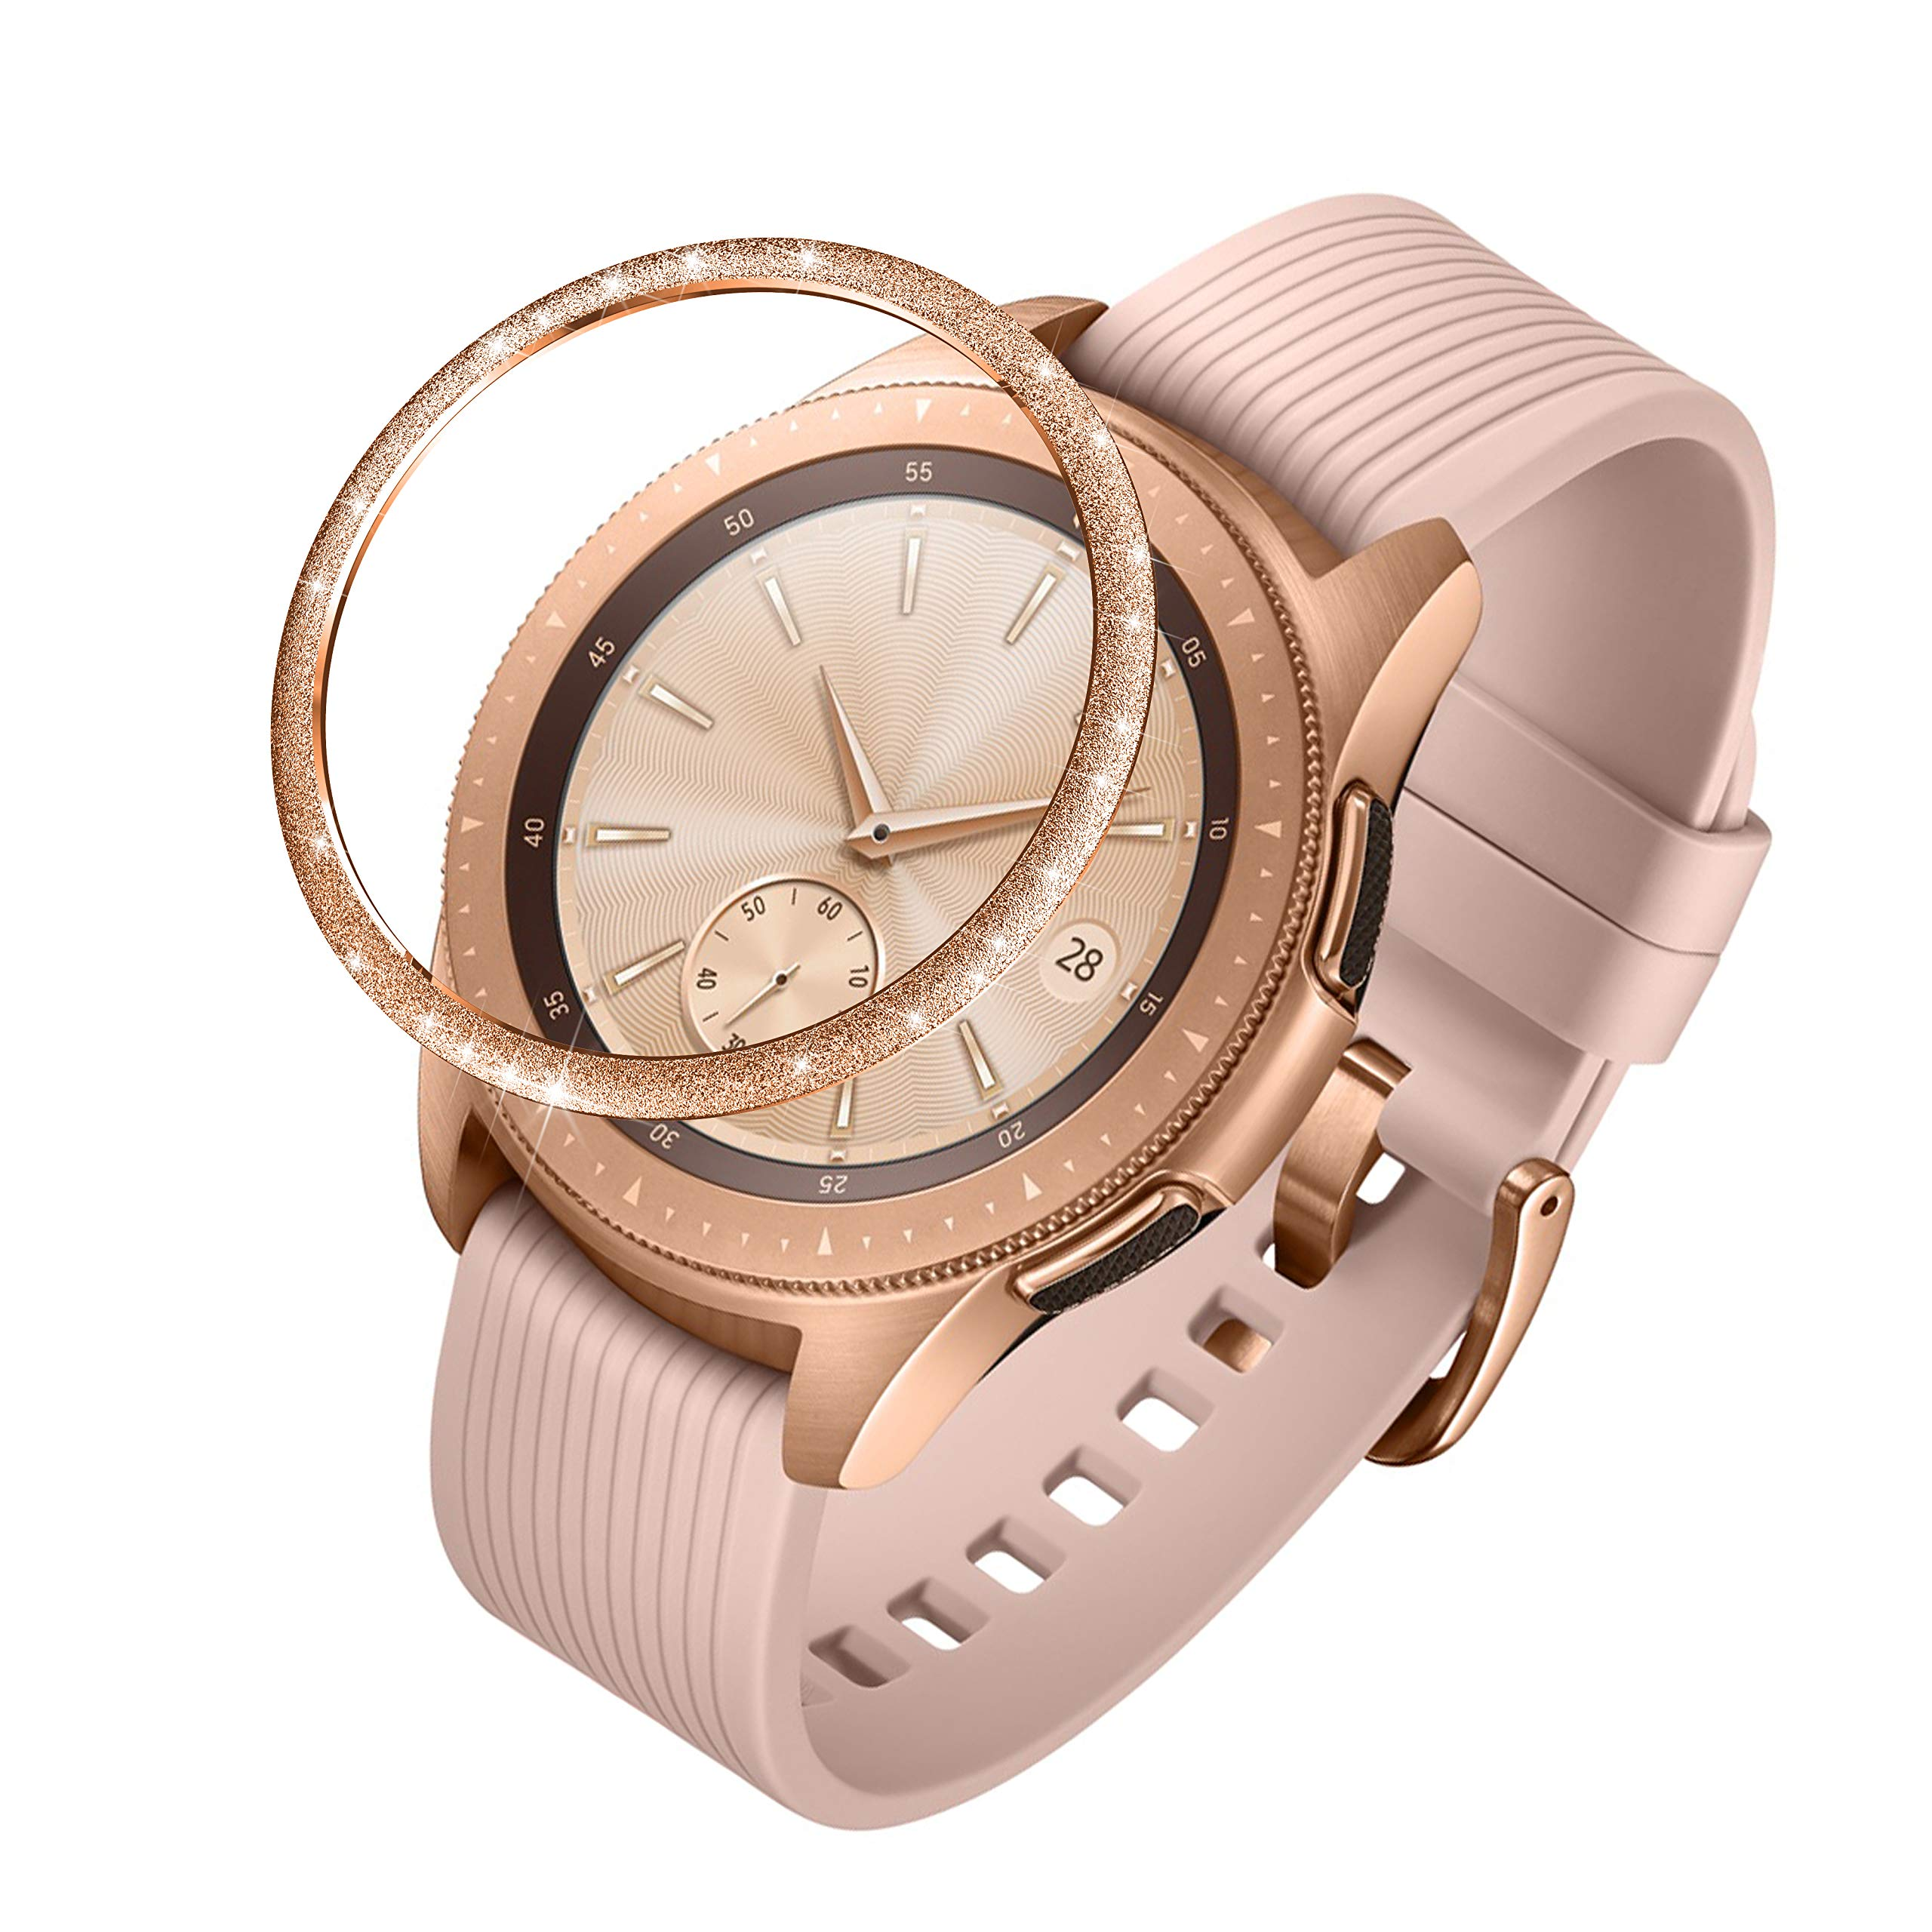 ANCOOL Compatible Samsung Galaxy Watch 42mm/Gear Sport Bezel Ring Adhesive Cover Anti Scratch Stainless Steel Protector Design for Galaxy Watch 42mm/Gear Sport -Rose Gold by ANCOOL